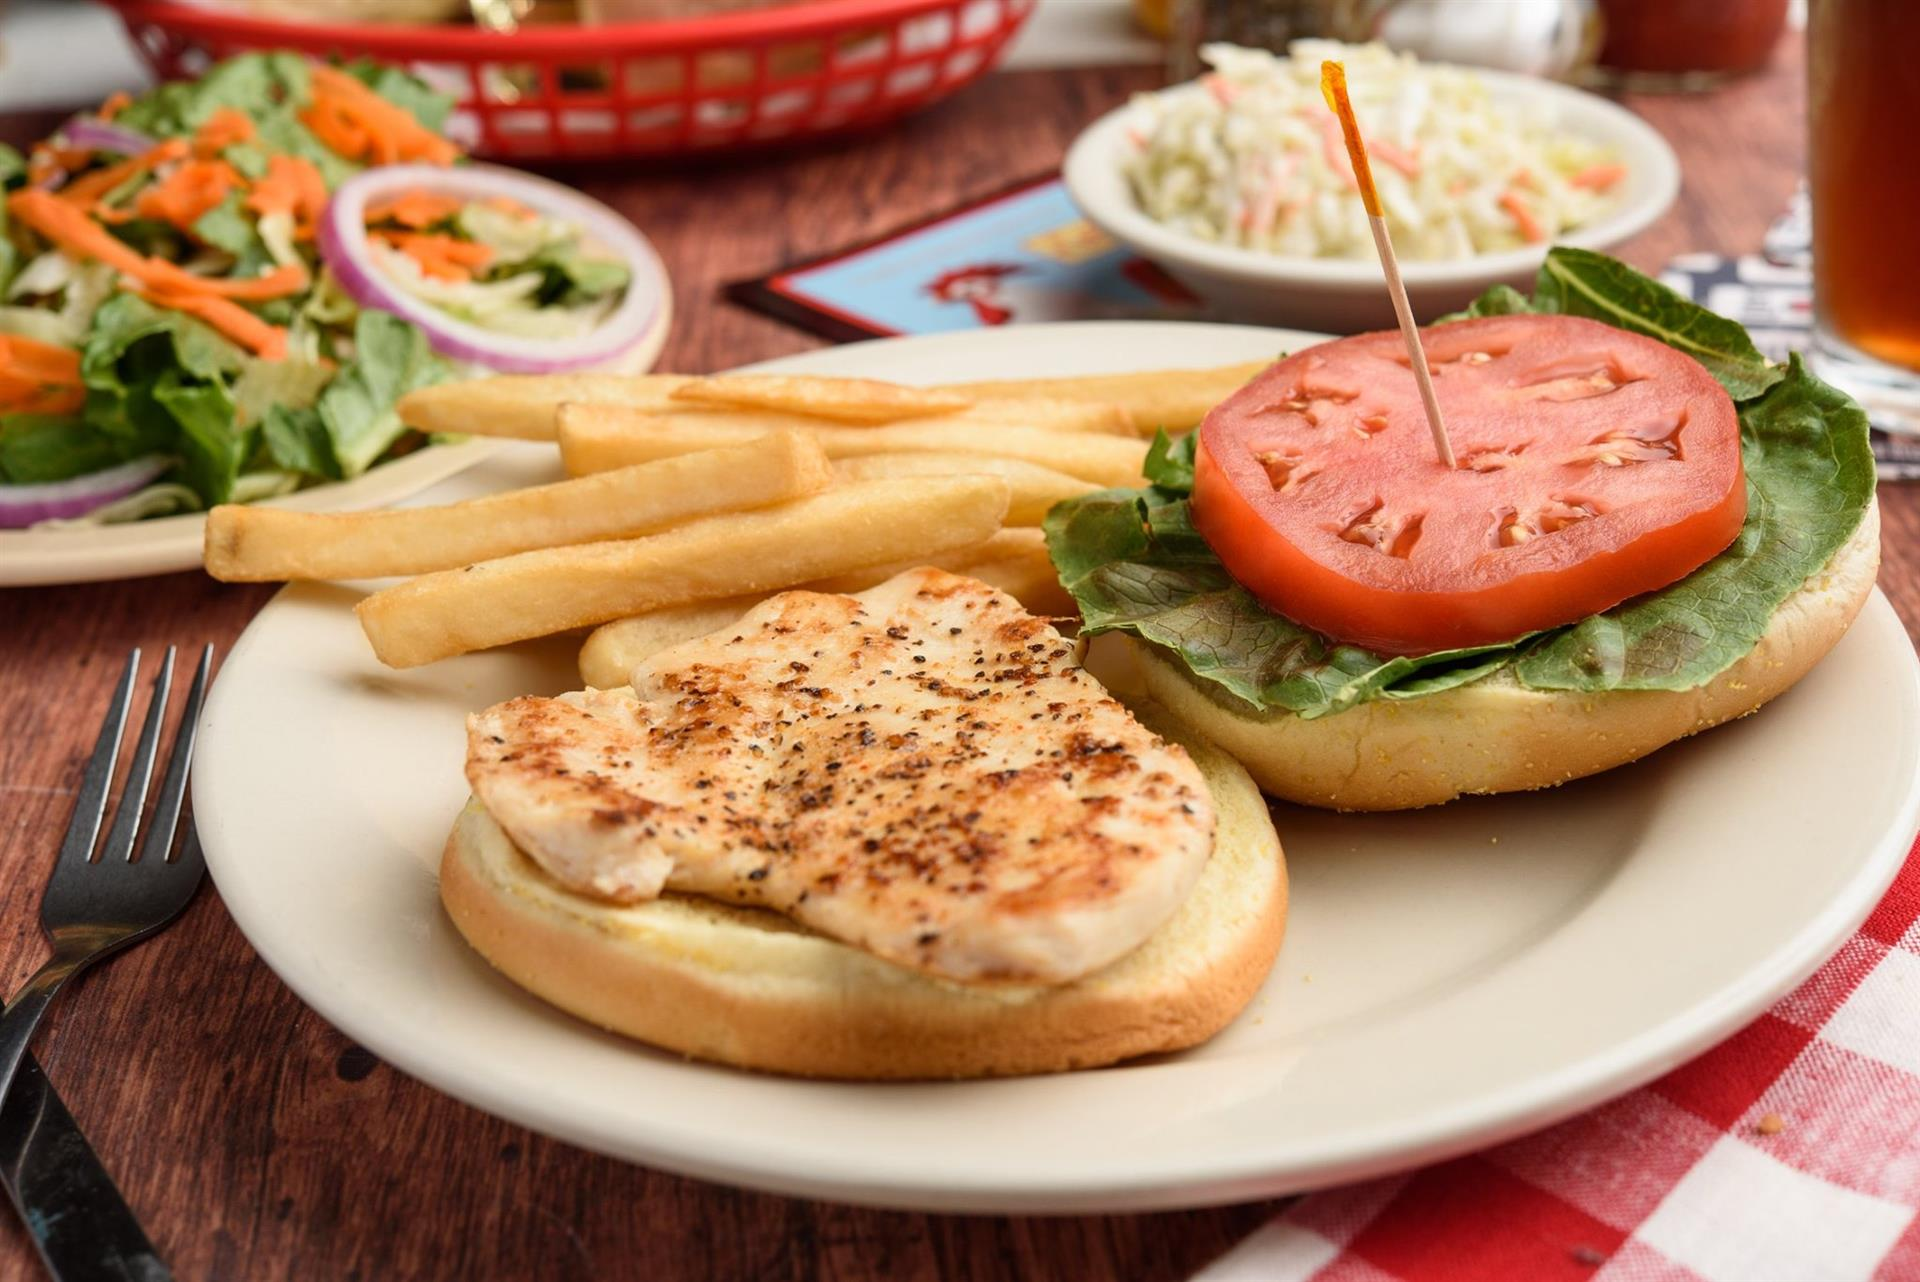 grilled chicken sandwich with tomato, lettuce, and a side of fries